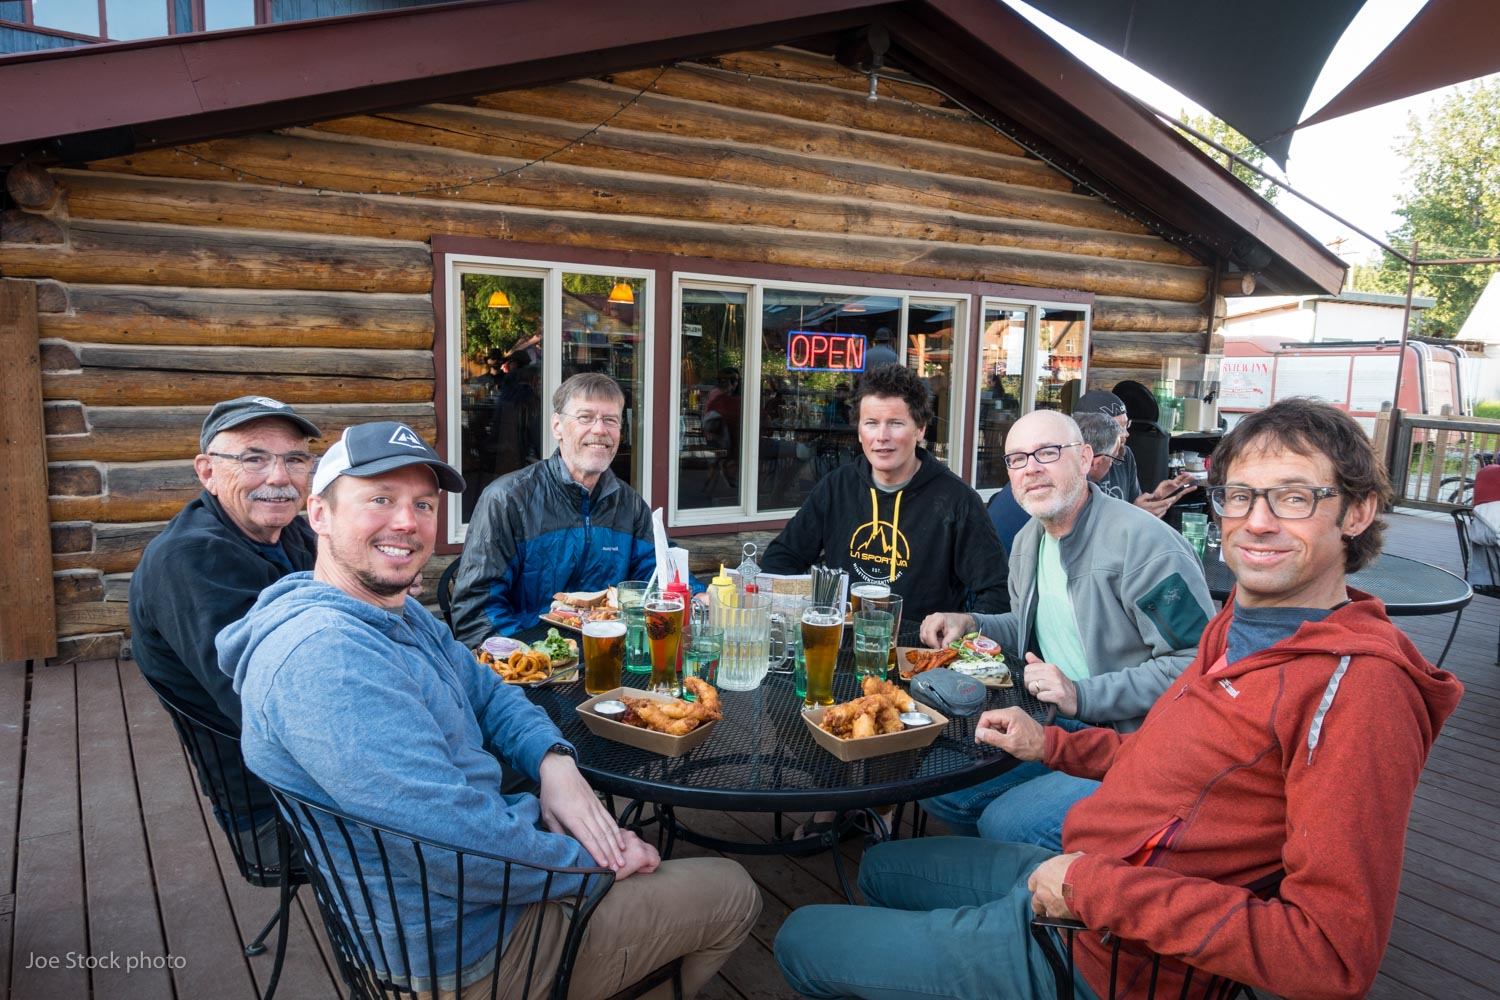 Beverages and piles of food at Twister Creek back in Talkeetna.  Thanks guys for yet another incredible trip! Your friendships are among the best and longest of my mountain time. Mountains are just mountains. It's people like you that make the mountains special.